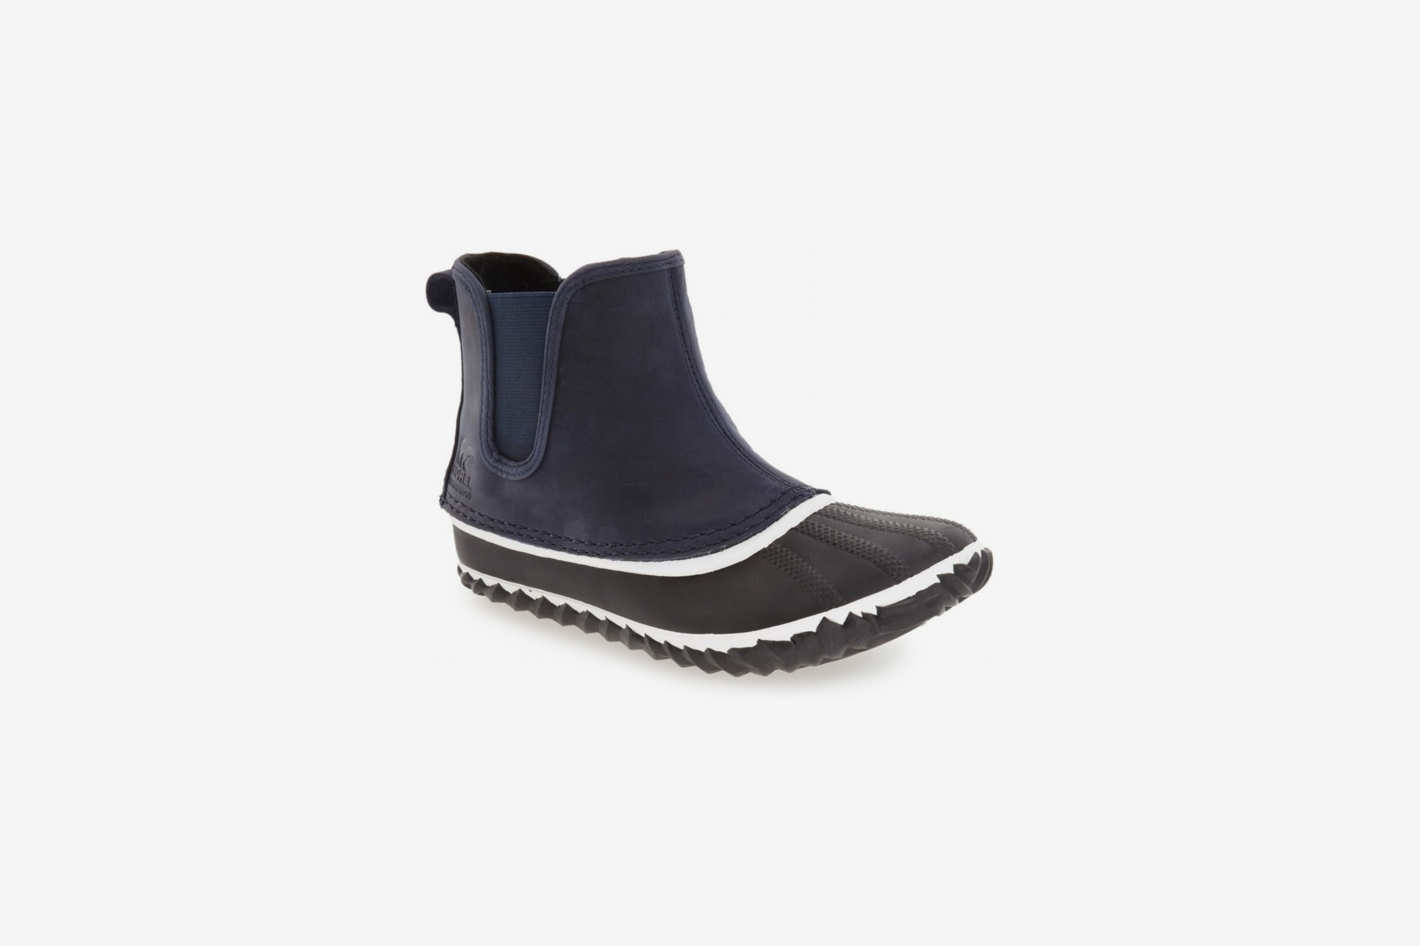 Sorel Out N About Waterproof Chelsea Boot